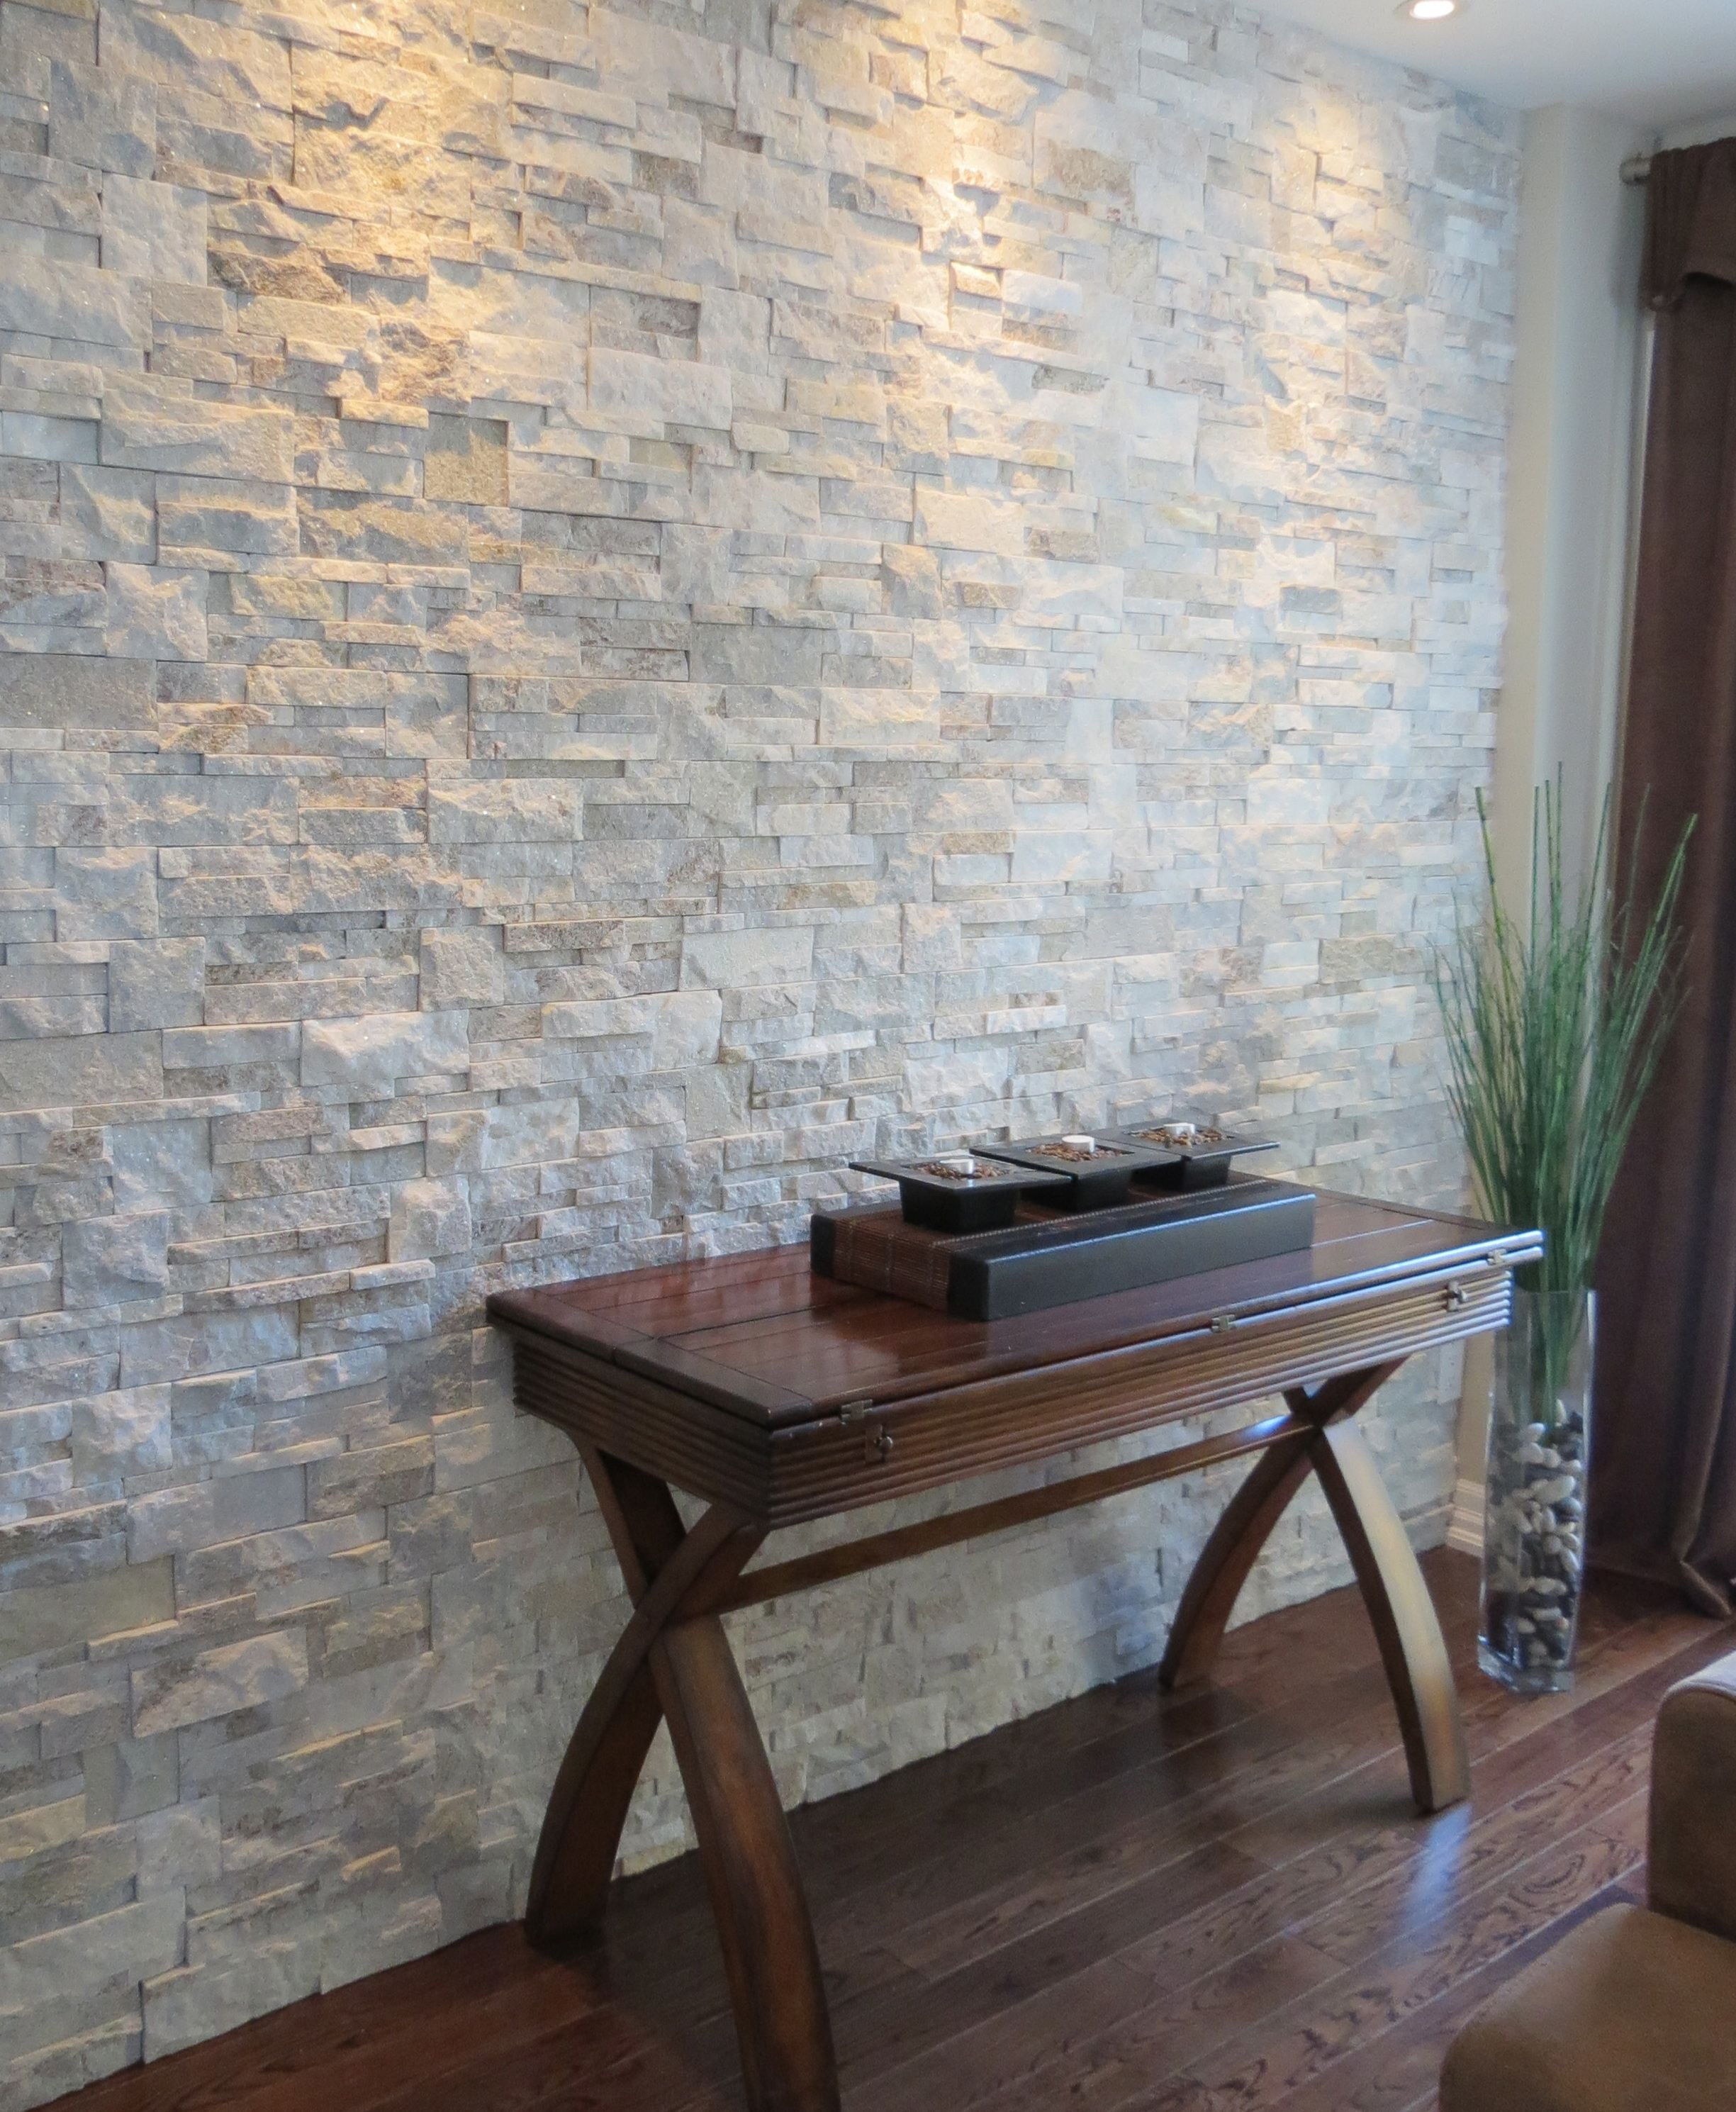 Accent Stone Wall Quartzite Ledge Stone In Oyster Shell On An Interior